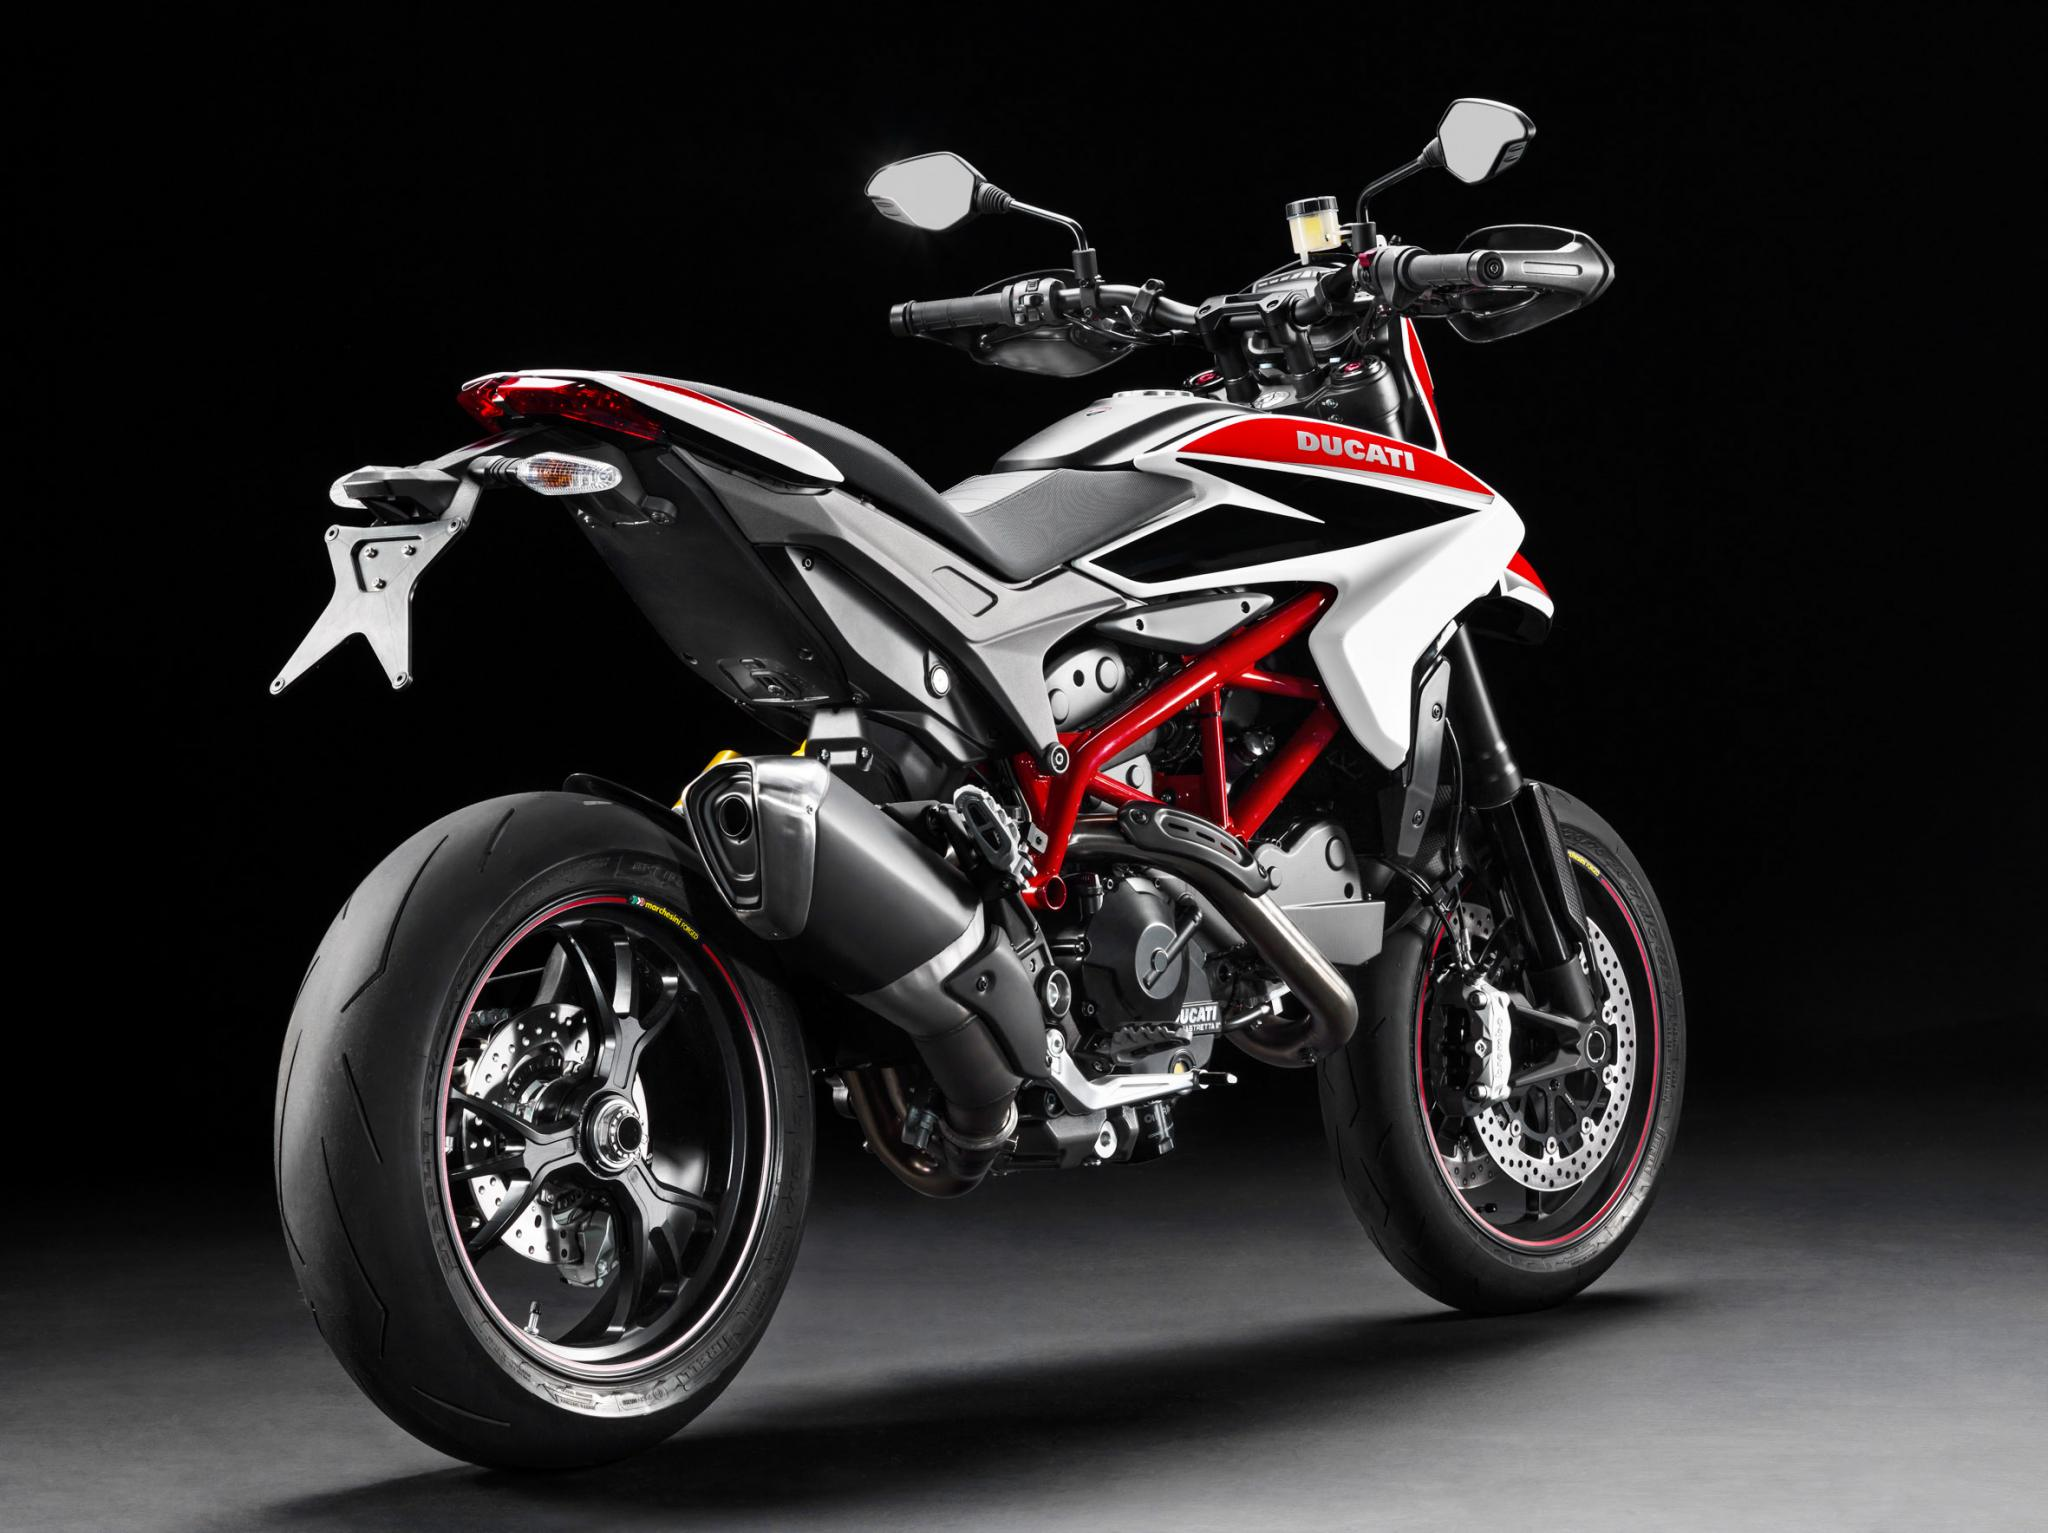 ducati hypermotard 2013 motorrad fotos motorrad bilder. Black Bedroom Furniture Sets. Home Design Ideas